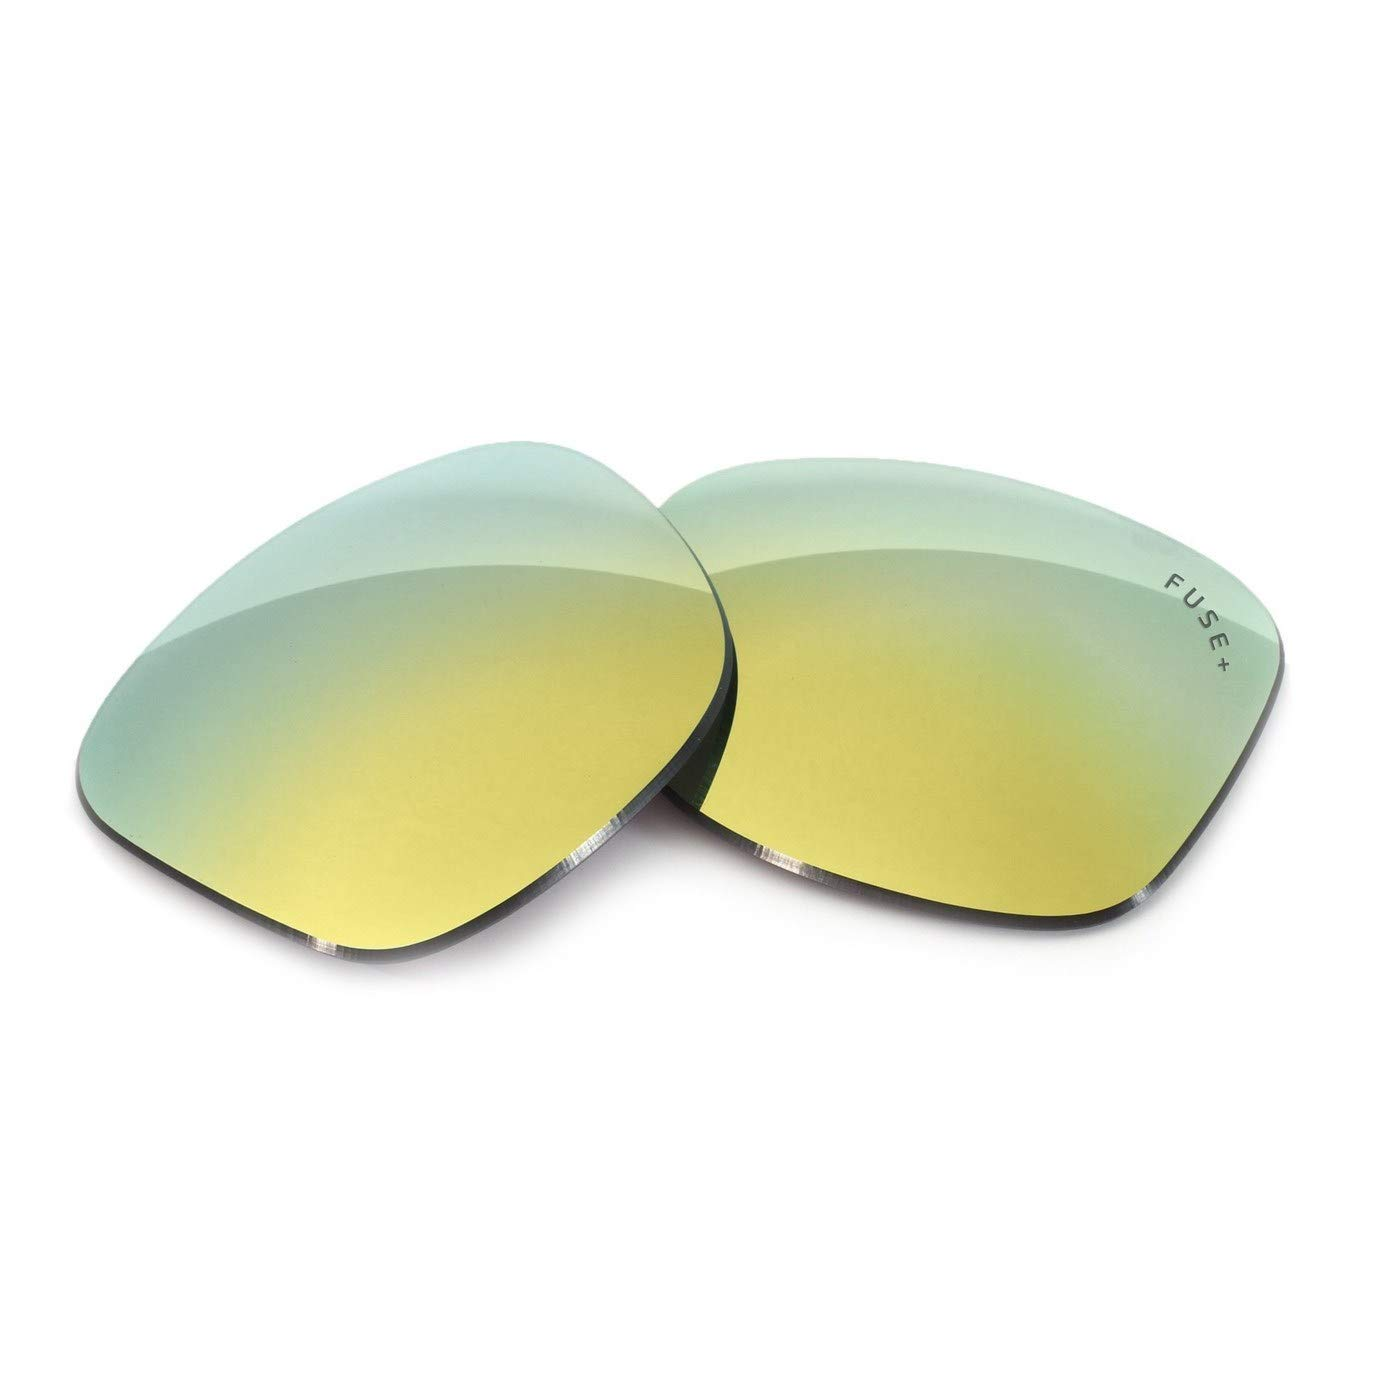 Fuse Lenses Fuse Plus Replacement Lenses for Oliver Peoples OV5229